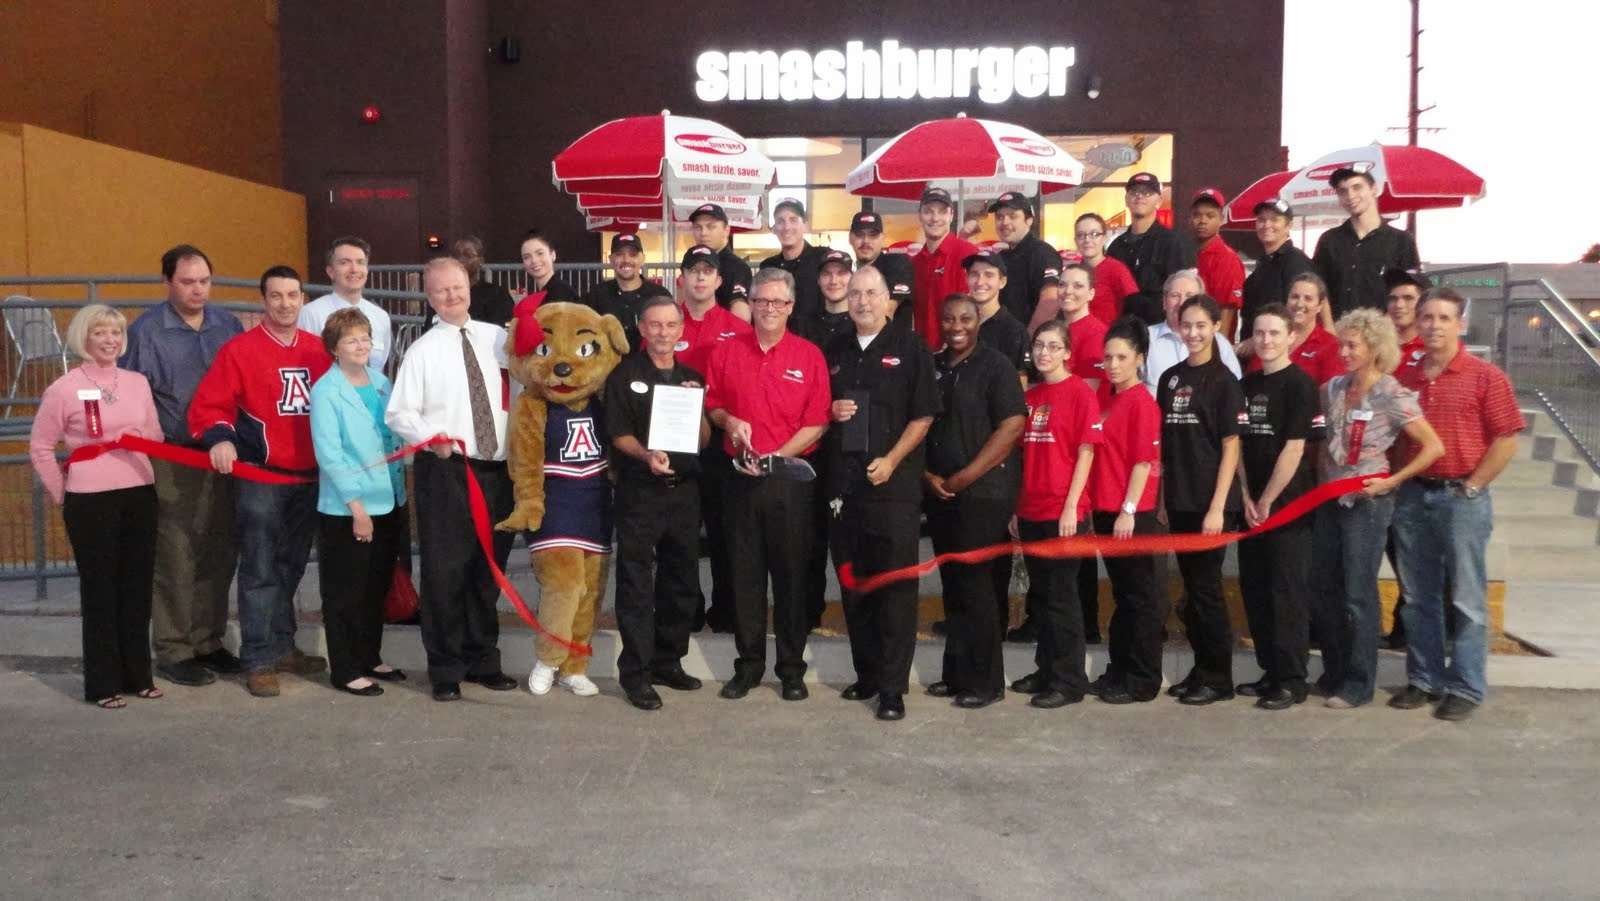 Smashburger's burgers are smashed fresh, served delicious along with tasty chicken sandwiches, grilled and split hot dogs, fresh salads and a variety of sides.